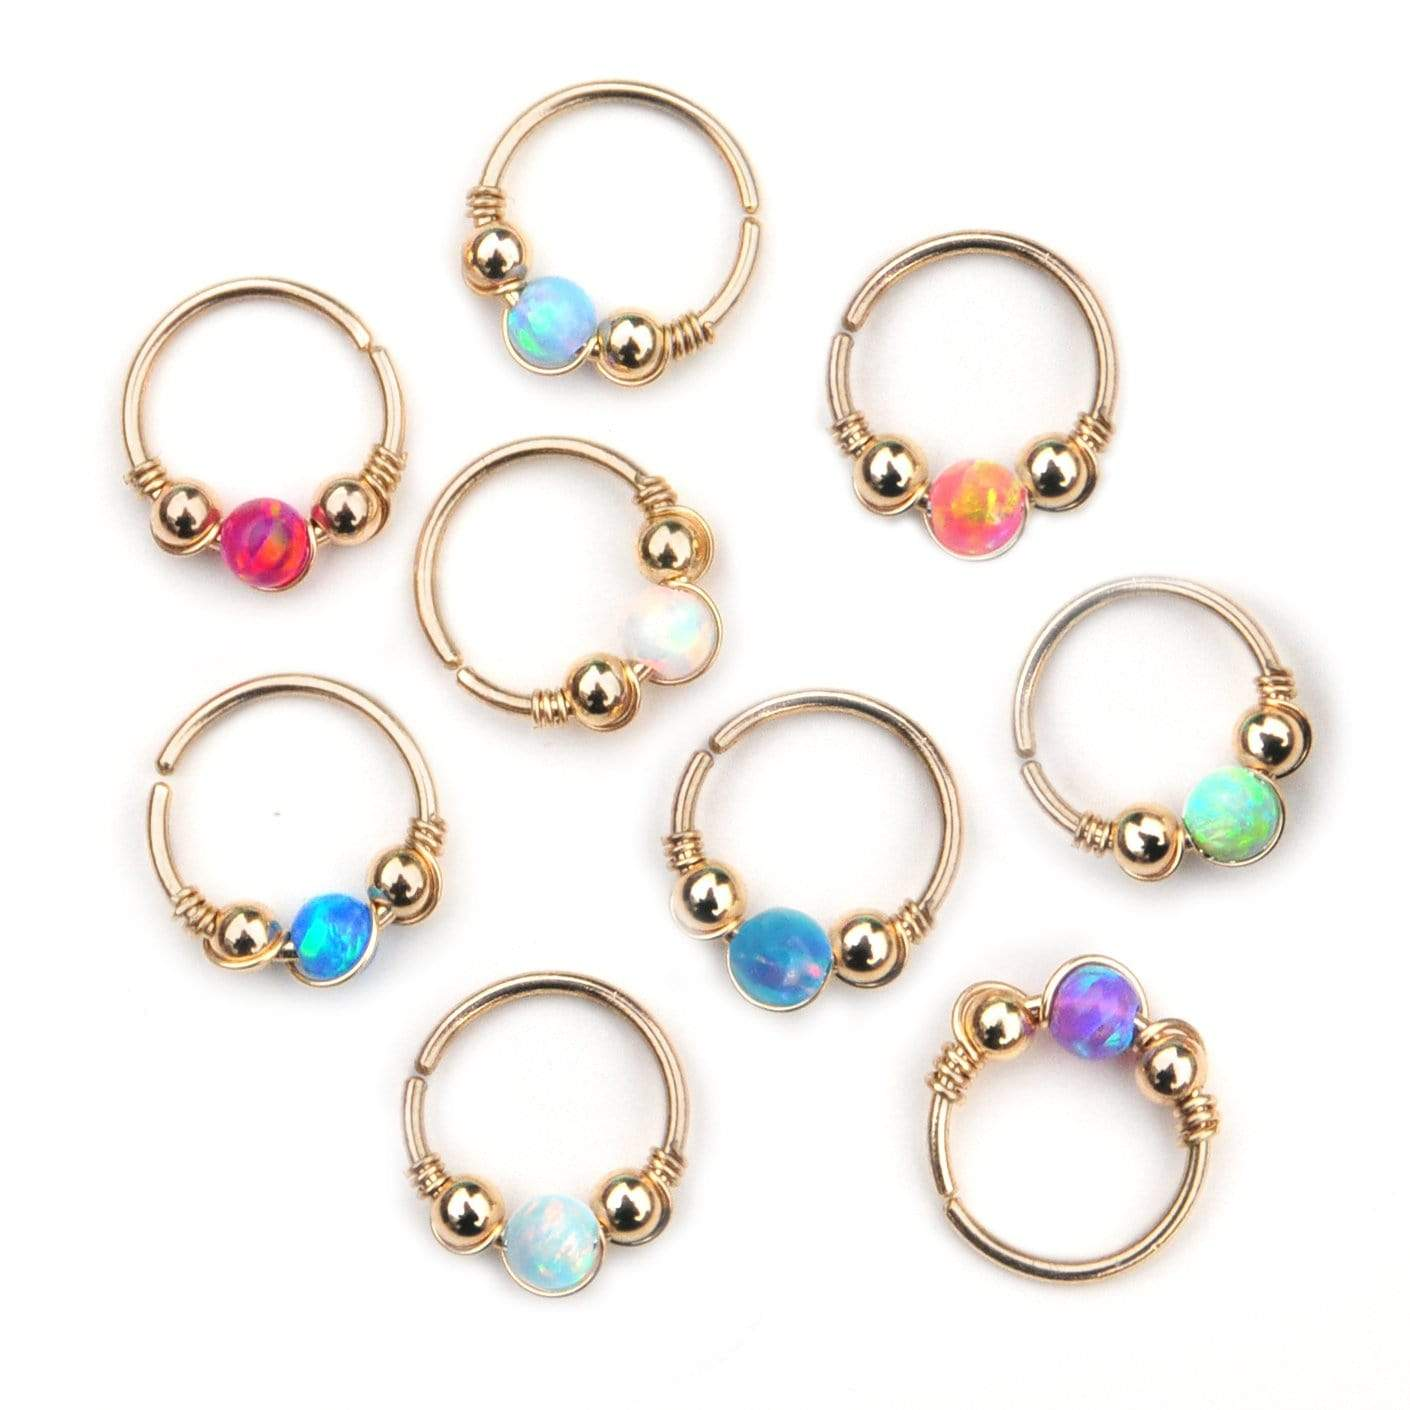 Gold Opal Hoop Earrings Cartilage Hoop Nose Ring Tragus